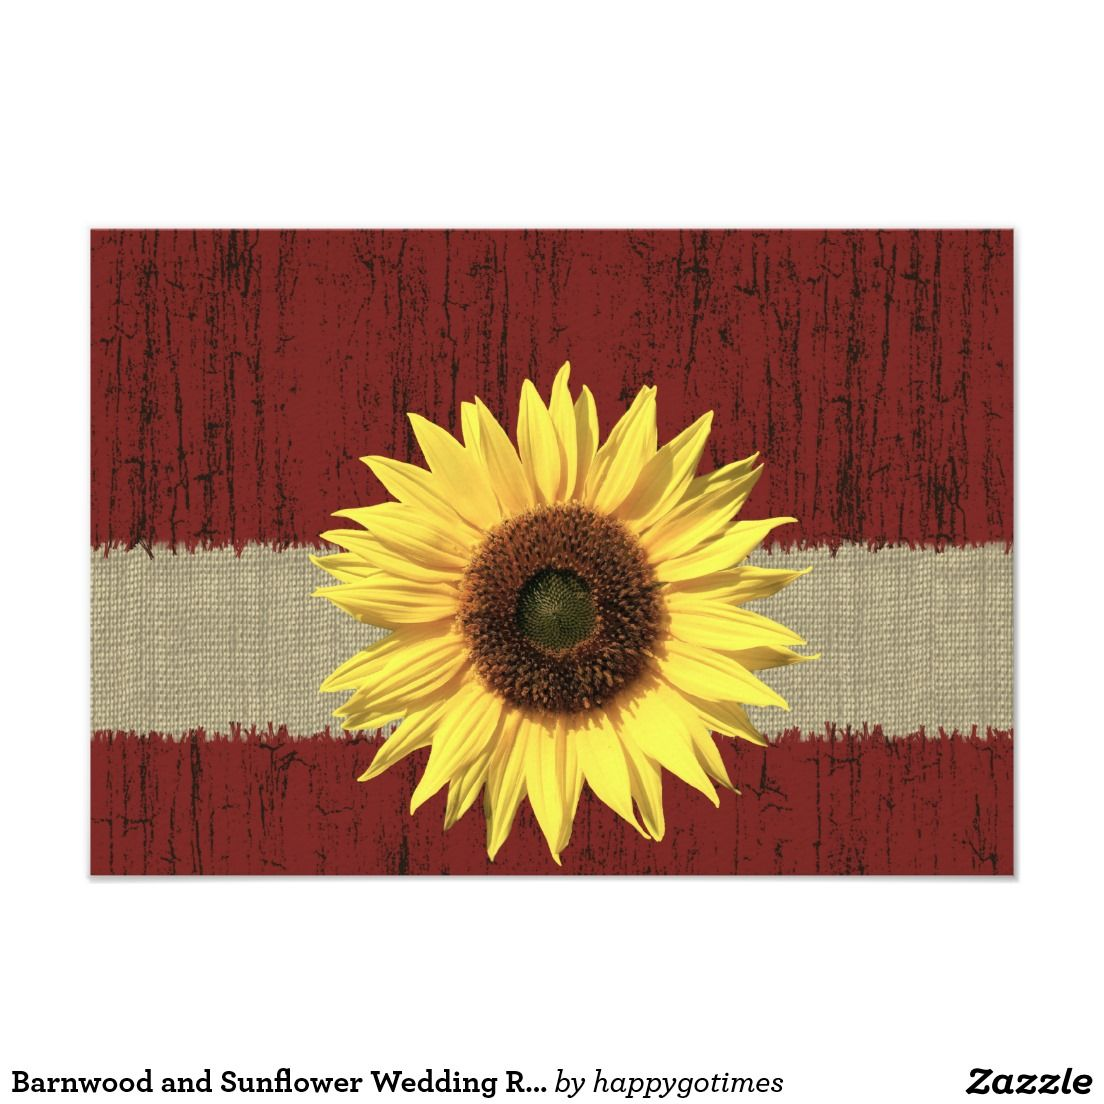 Barnwood and Sunflower Wedding RSVP | Wedding rsvp, Rsvp and Sunflowers